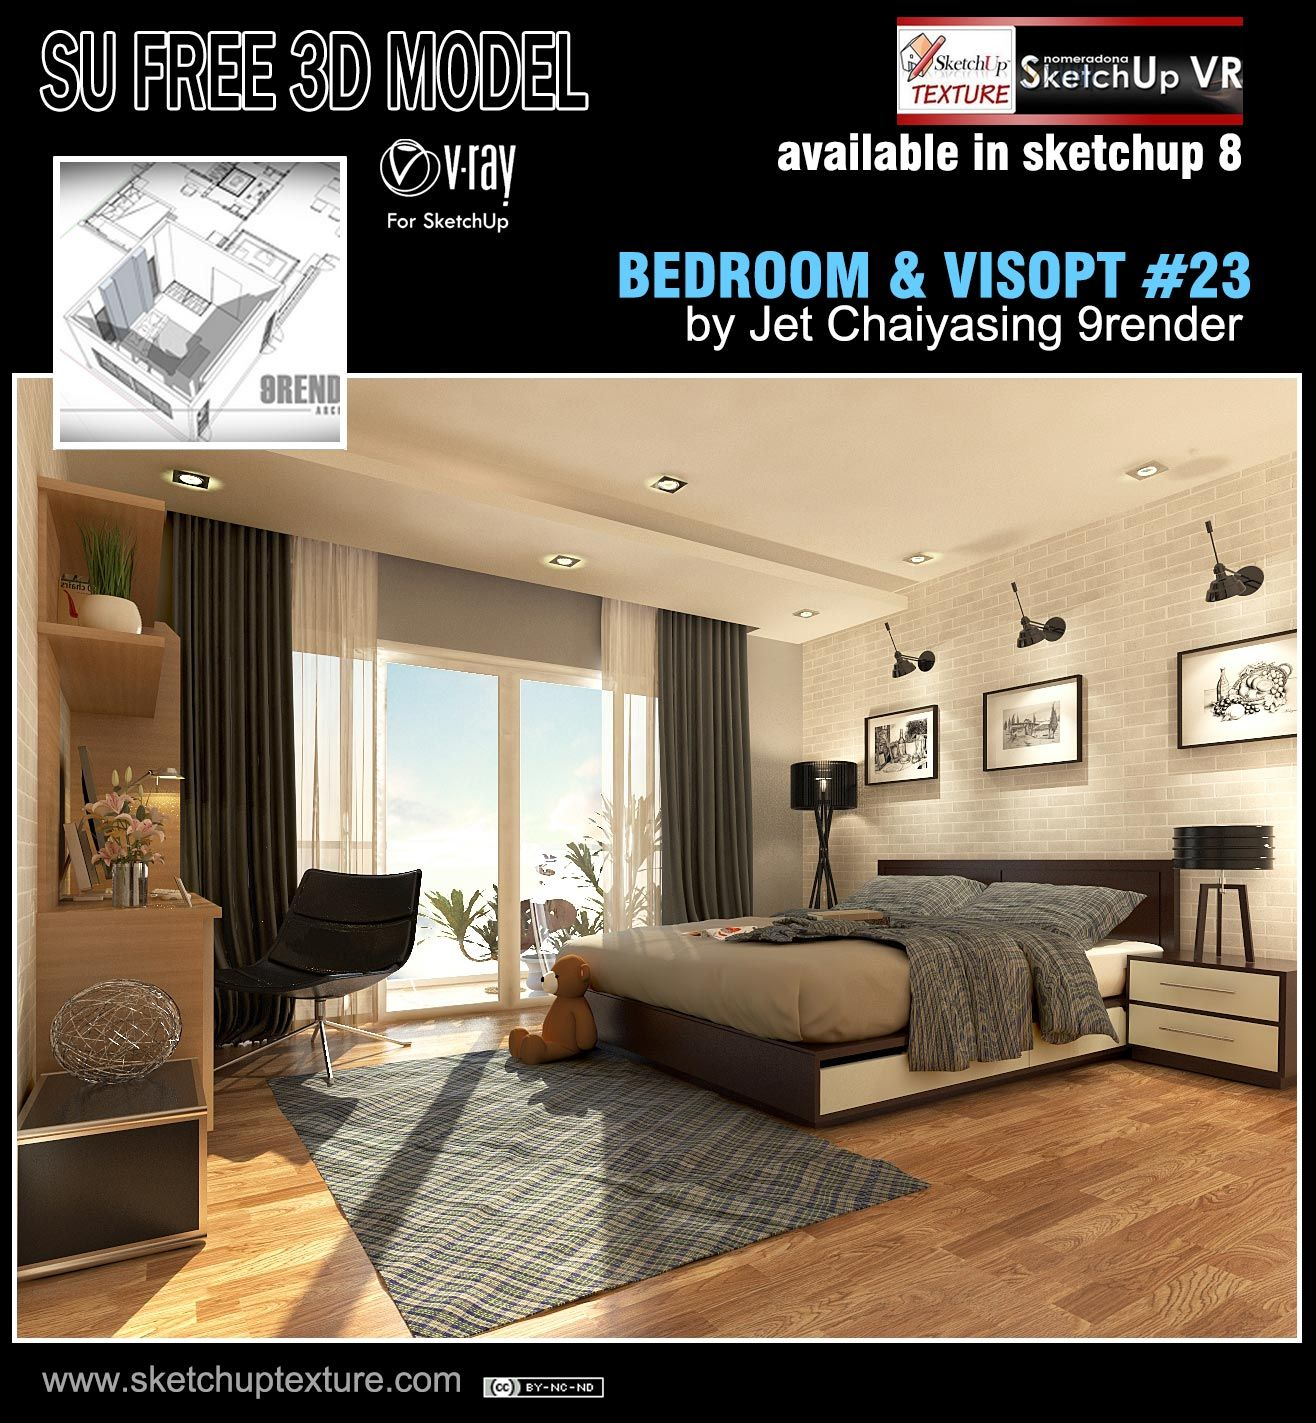 Free Sketchup Vray Visopt And 3d Model Bedroom 31 Shared By 9render Read More Http Www Sketchuptexture Com Bedroom Bed Design Sketchup Model Bed Design